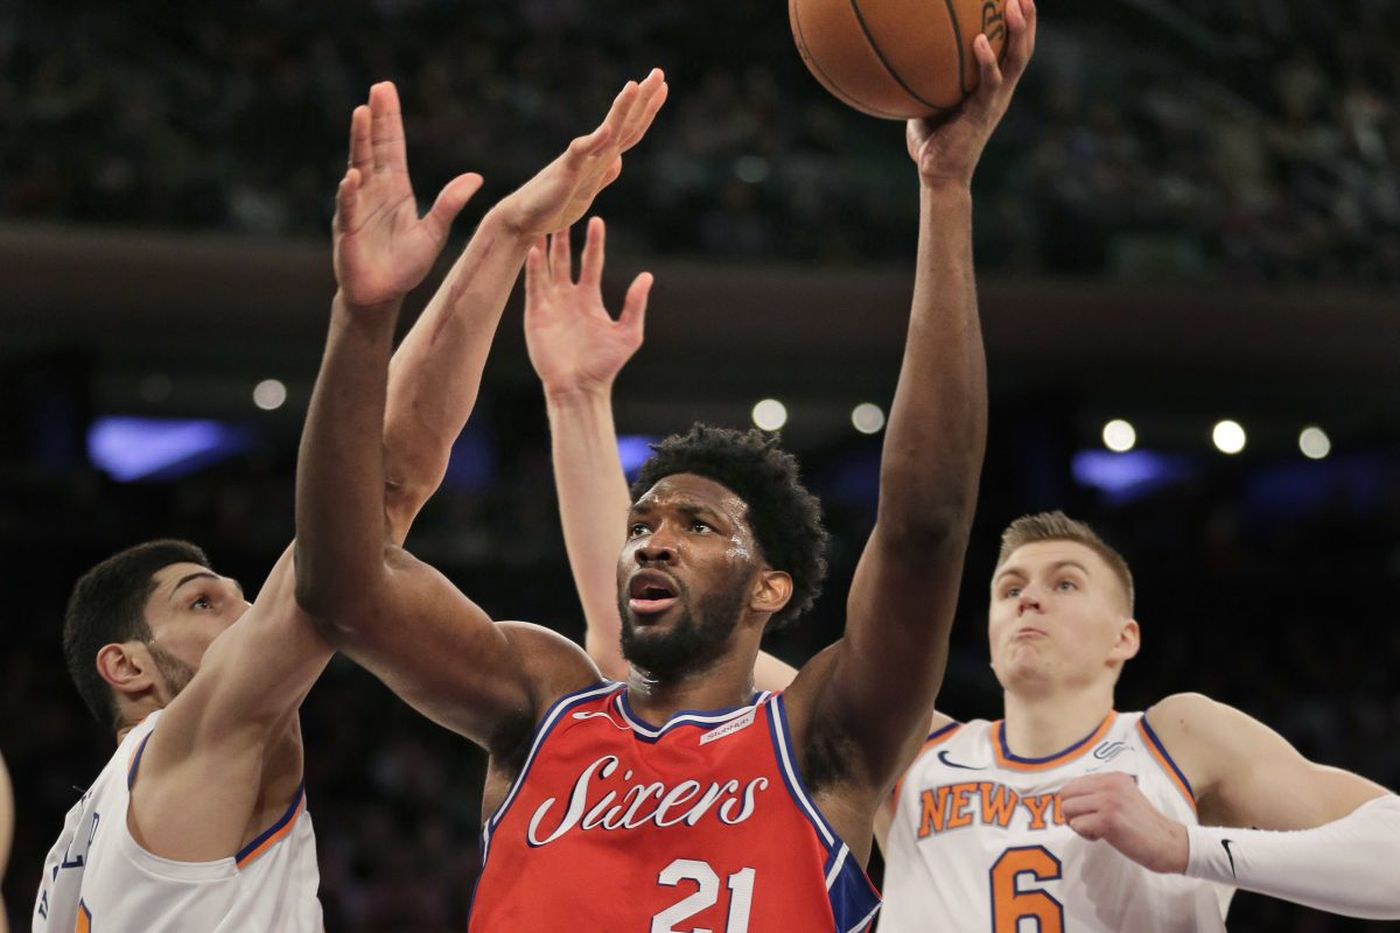 Joel Embiid's 25 points, 16 rebounds lead Sixers to 105-98 victory over Knicks